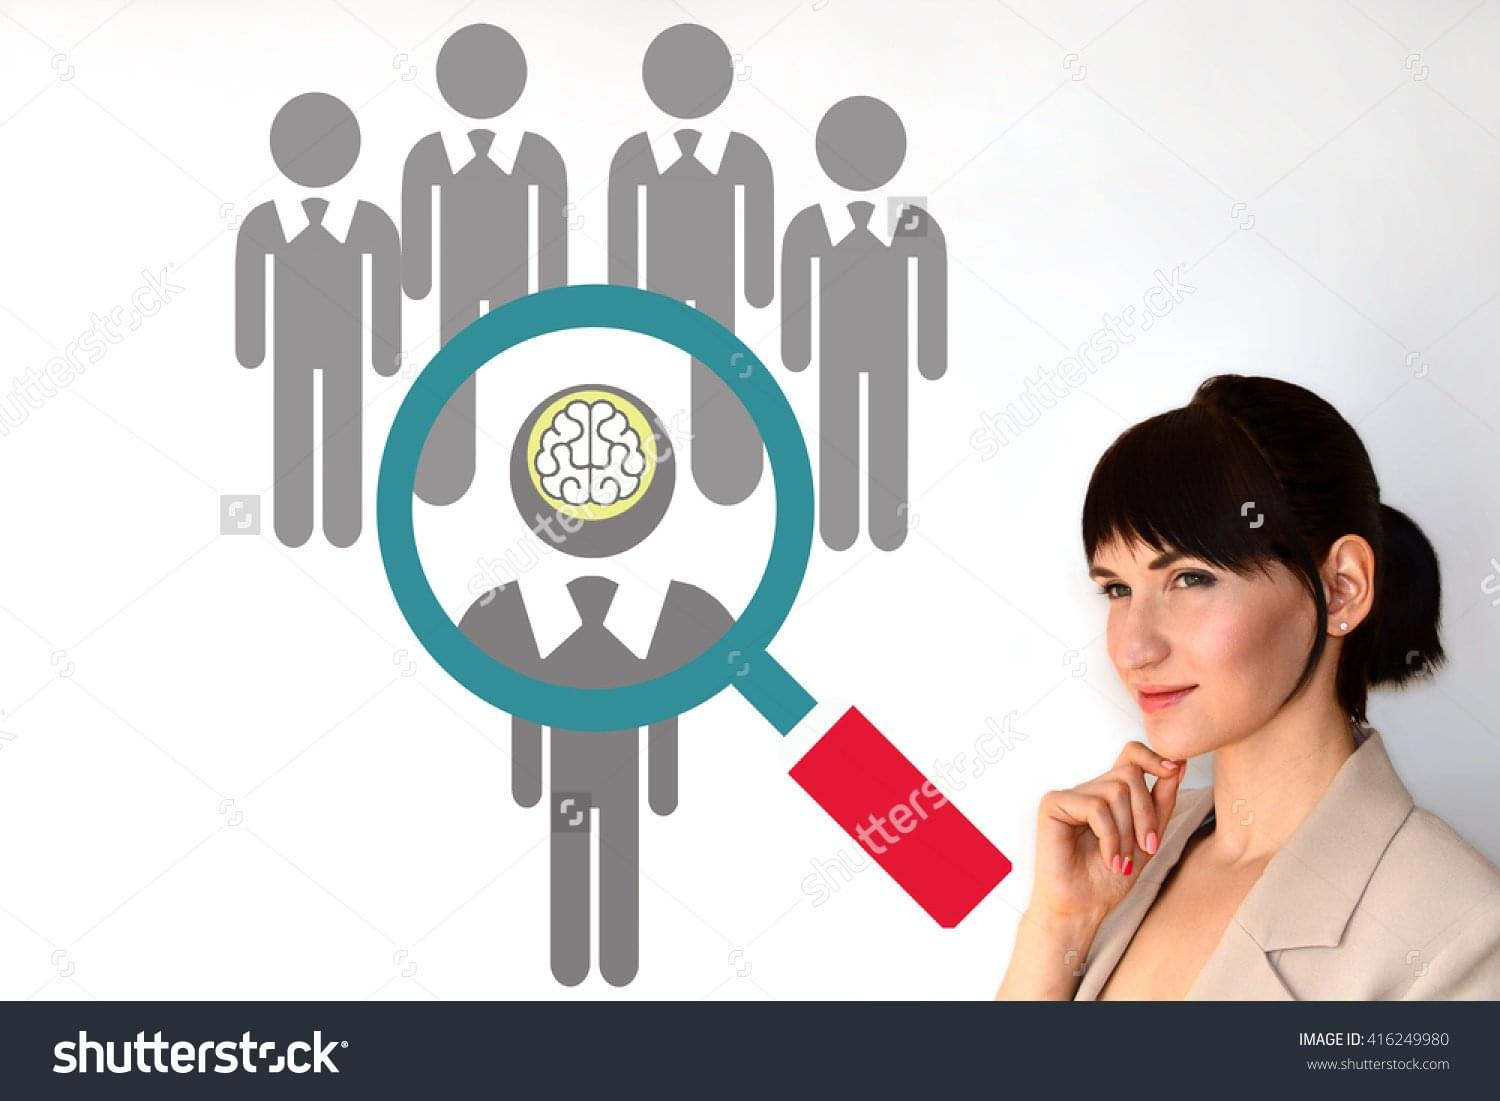 stock-photo-talent-acquisition-recruitment-hr-416249980